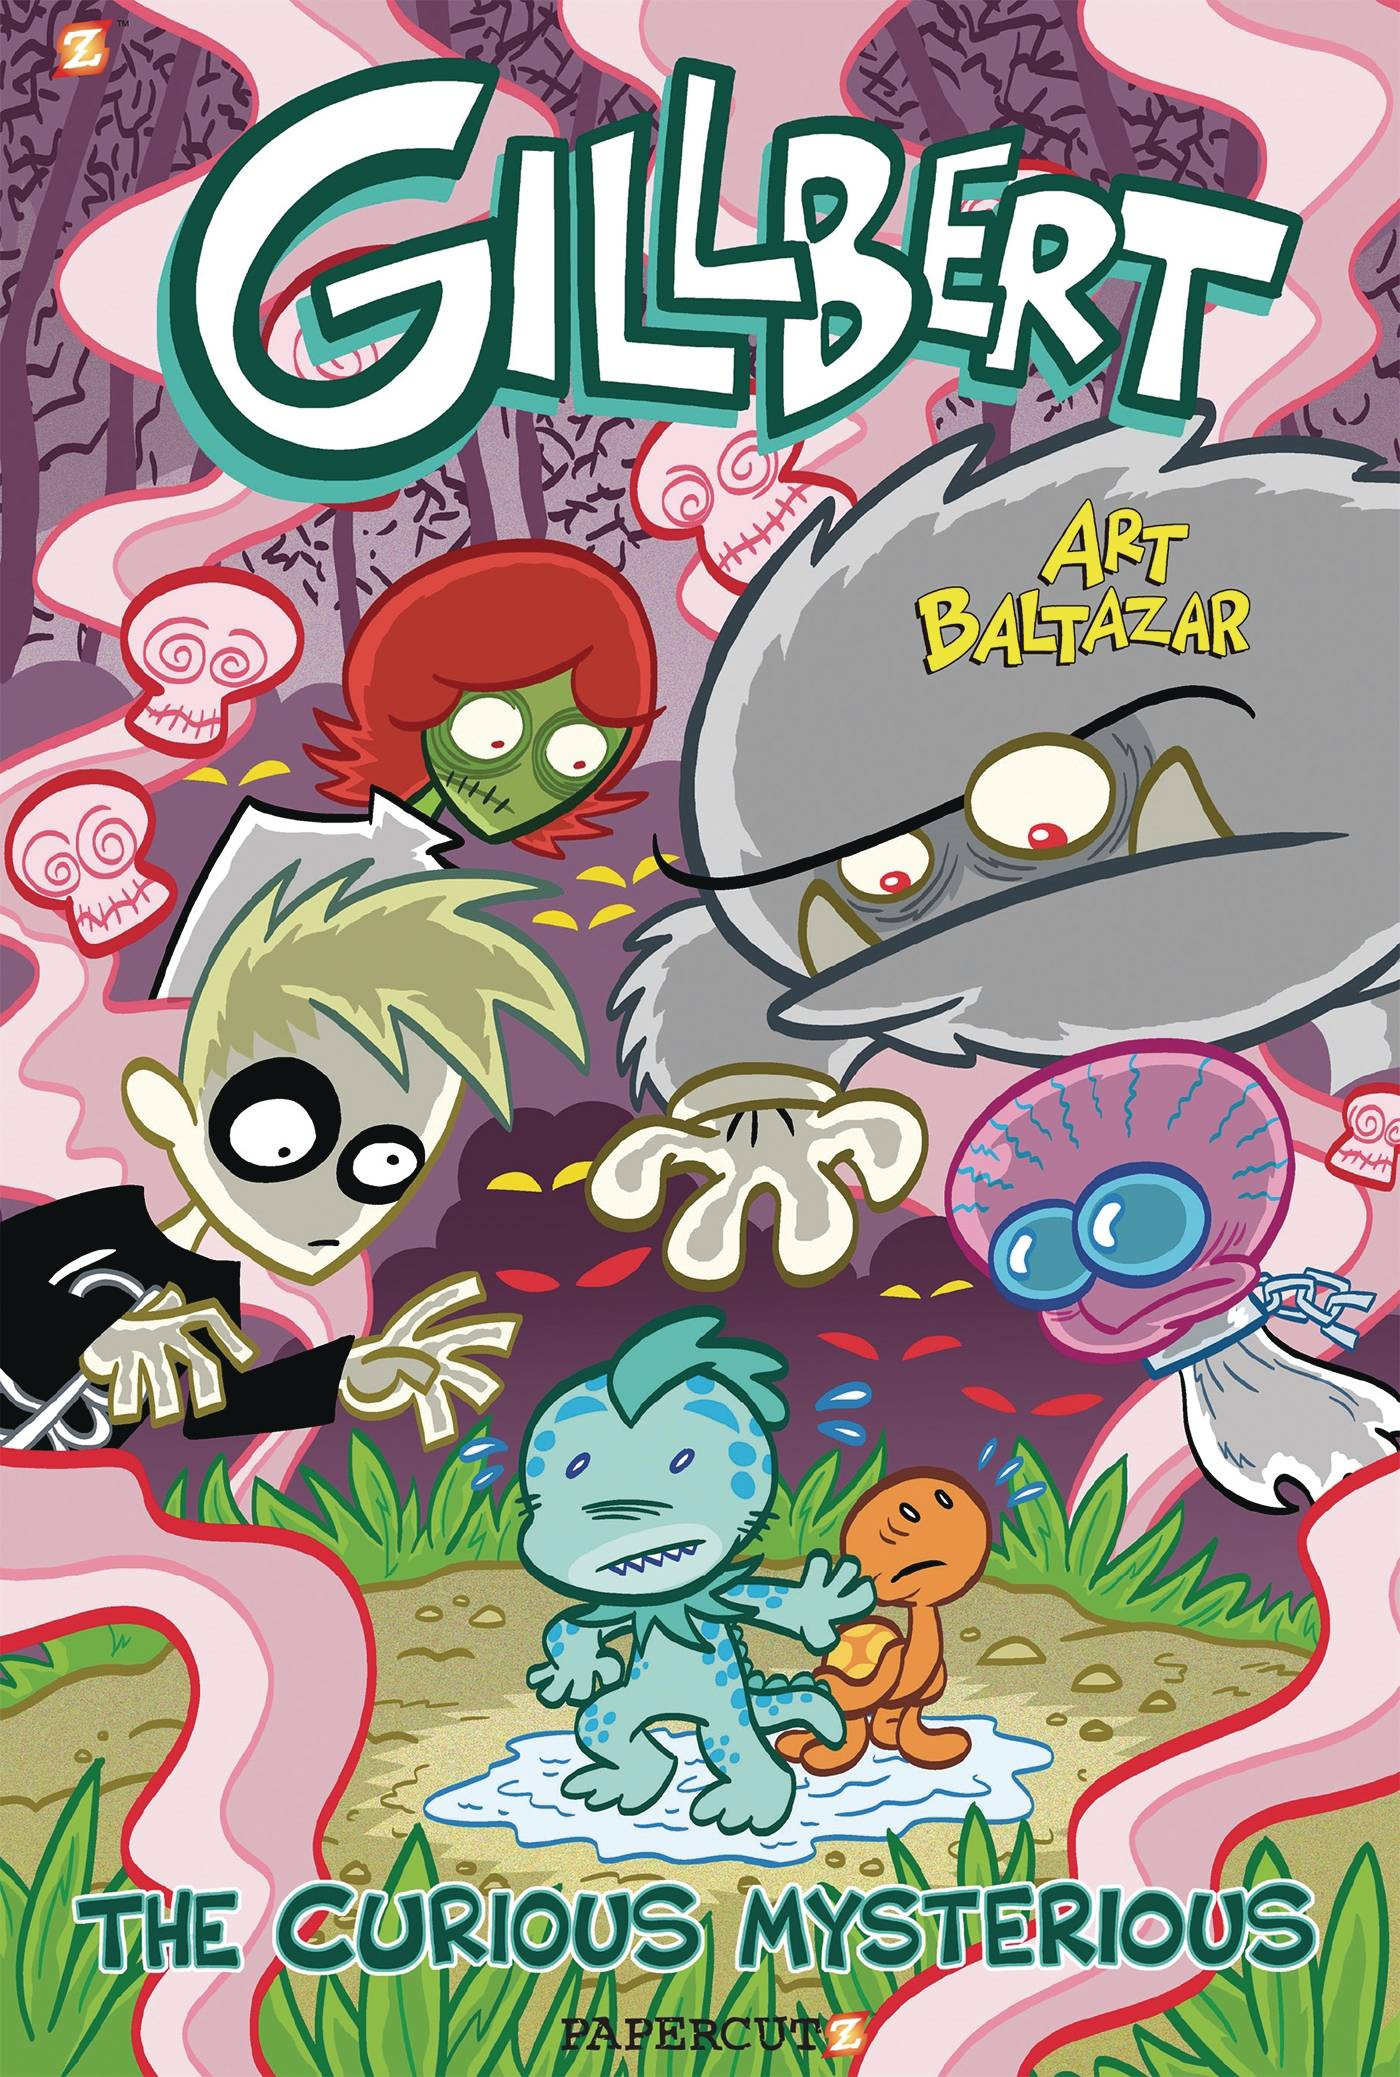 GILLBERT THE LITTLE MERMAN GN VOL 02 CURIOUS MYSTERIOUS